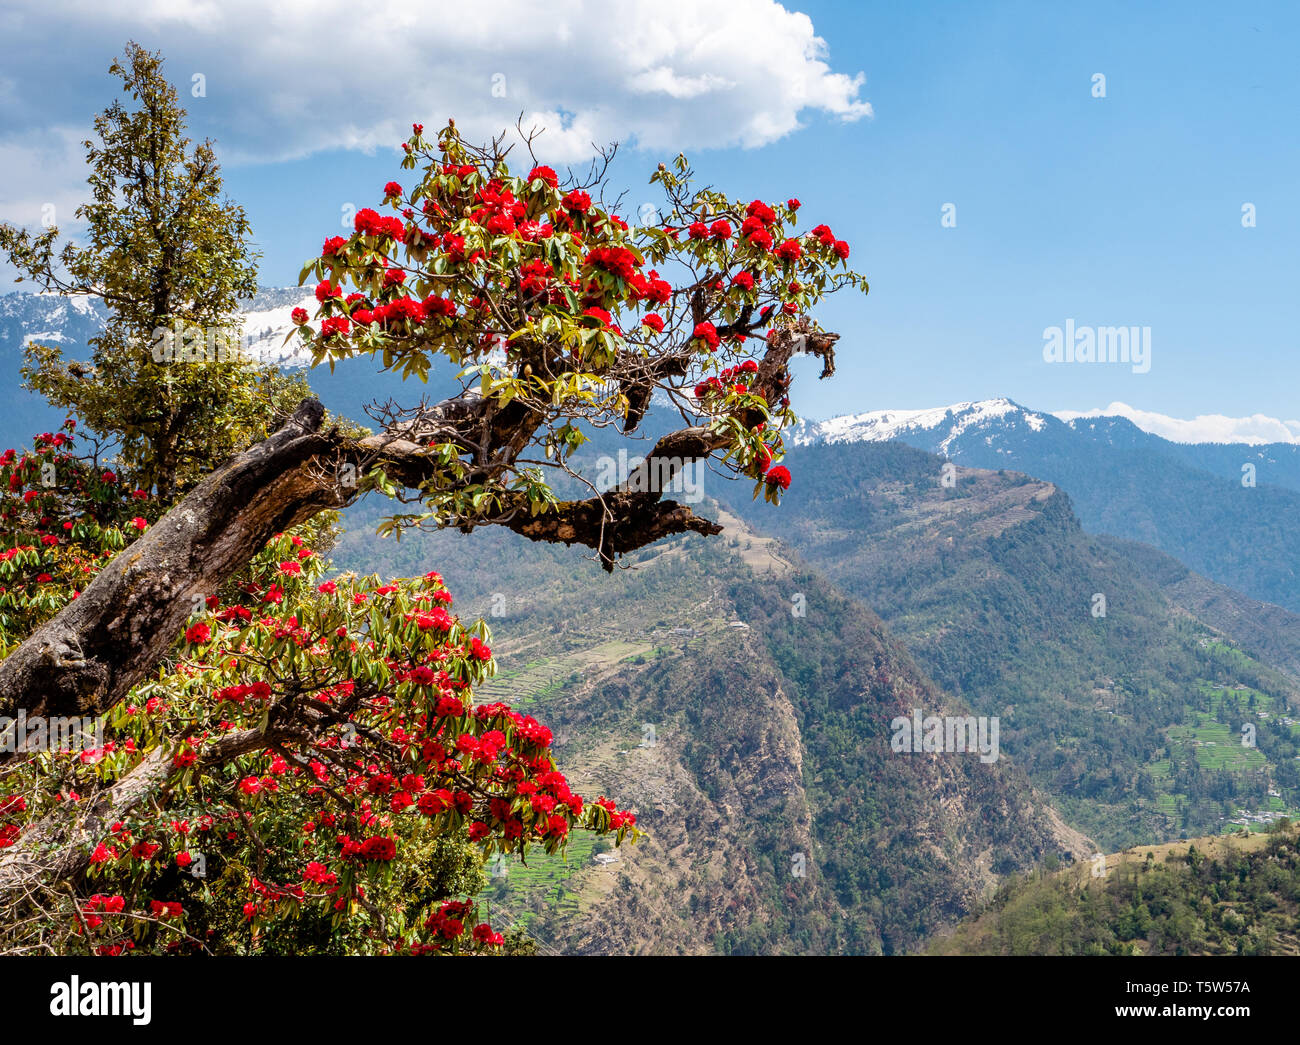 Spectacular red flowers of tree rhododendron ( R. arboreum ) above the Saryu Valley in Uttarakhand Himalayas India - the state flower of Uttarakhand - Stock Image